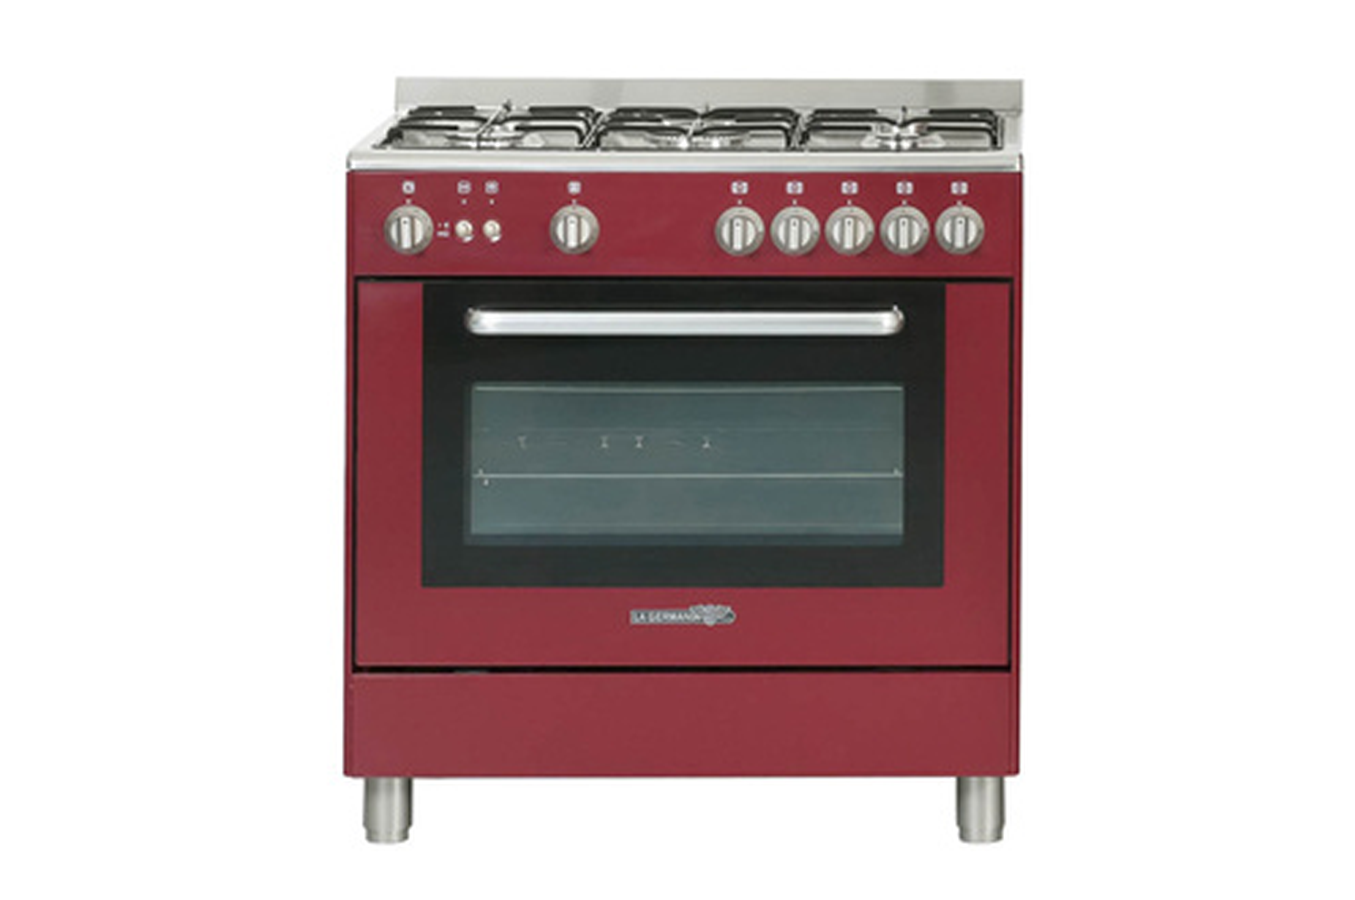 Piano de cuisson la germania t85c20vidt rouge 3557677 darty - Piano cuisson la germania ...